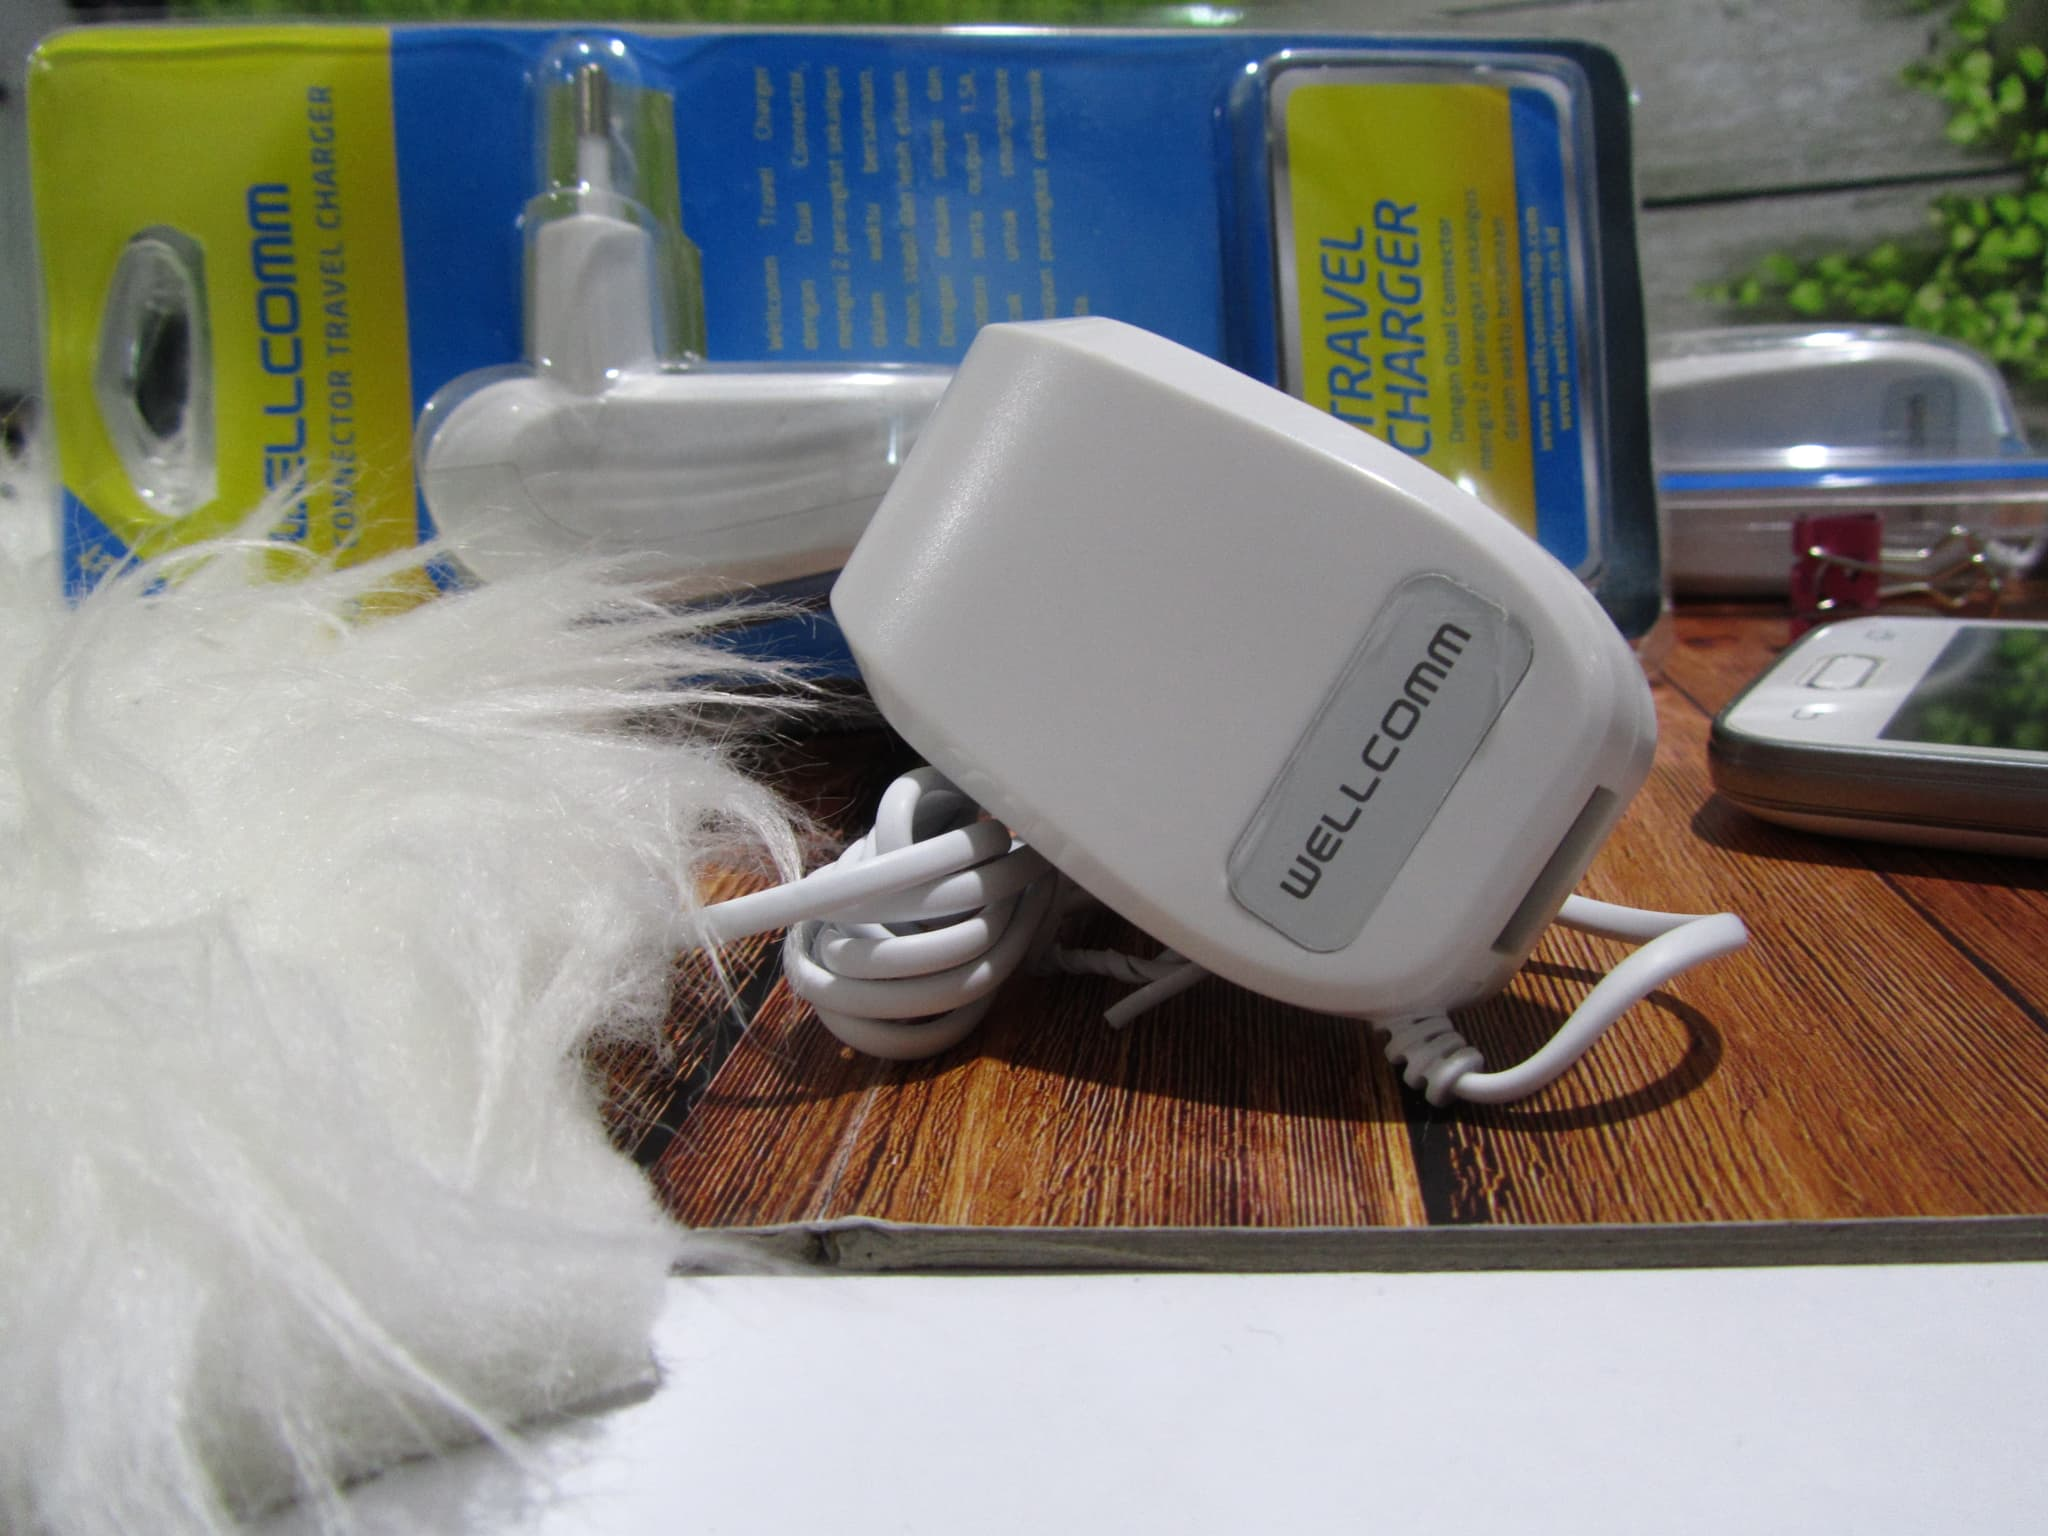 CHARGER WELLCOMM USB 1 AMPERE IPHONE 5 DAN IP-6